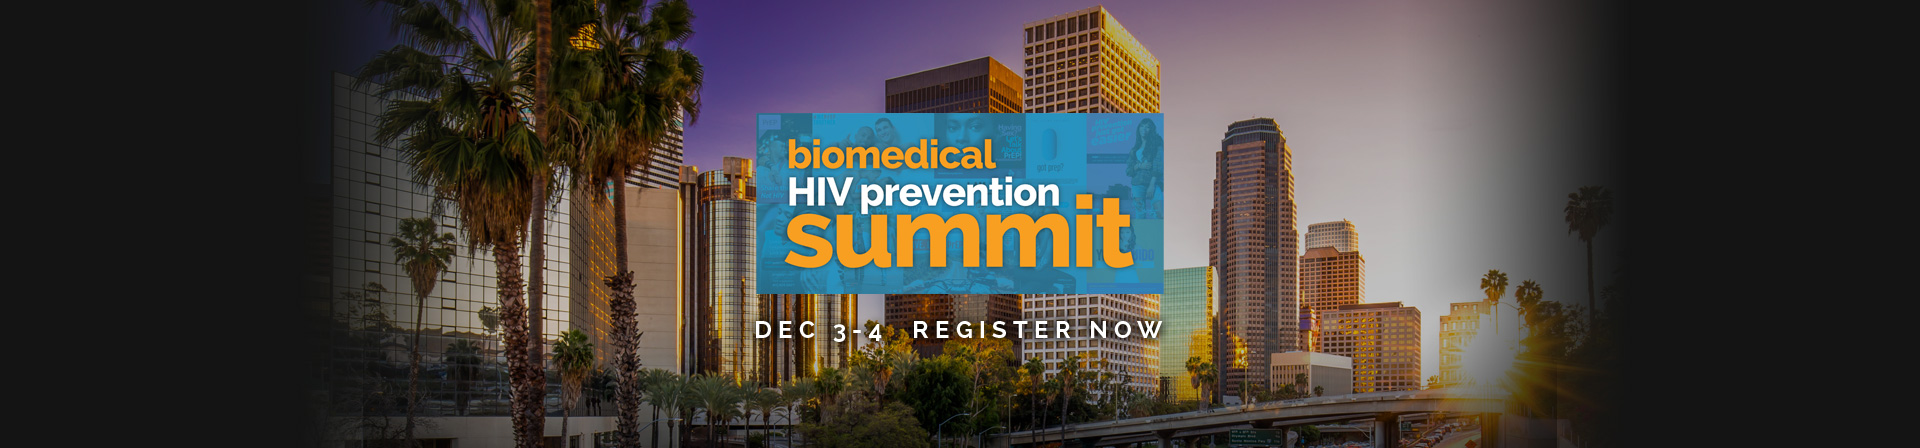 Biomedical HIV Prevention Summit - Dec 3-4, 2018 - Register Now